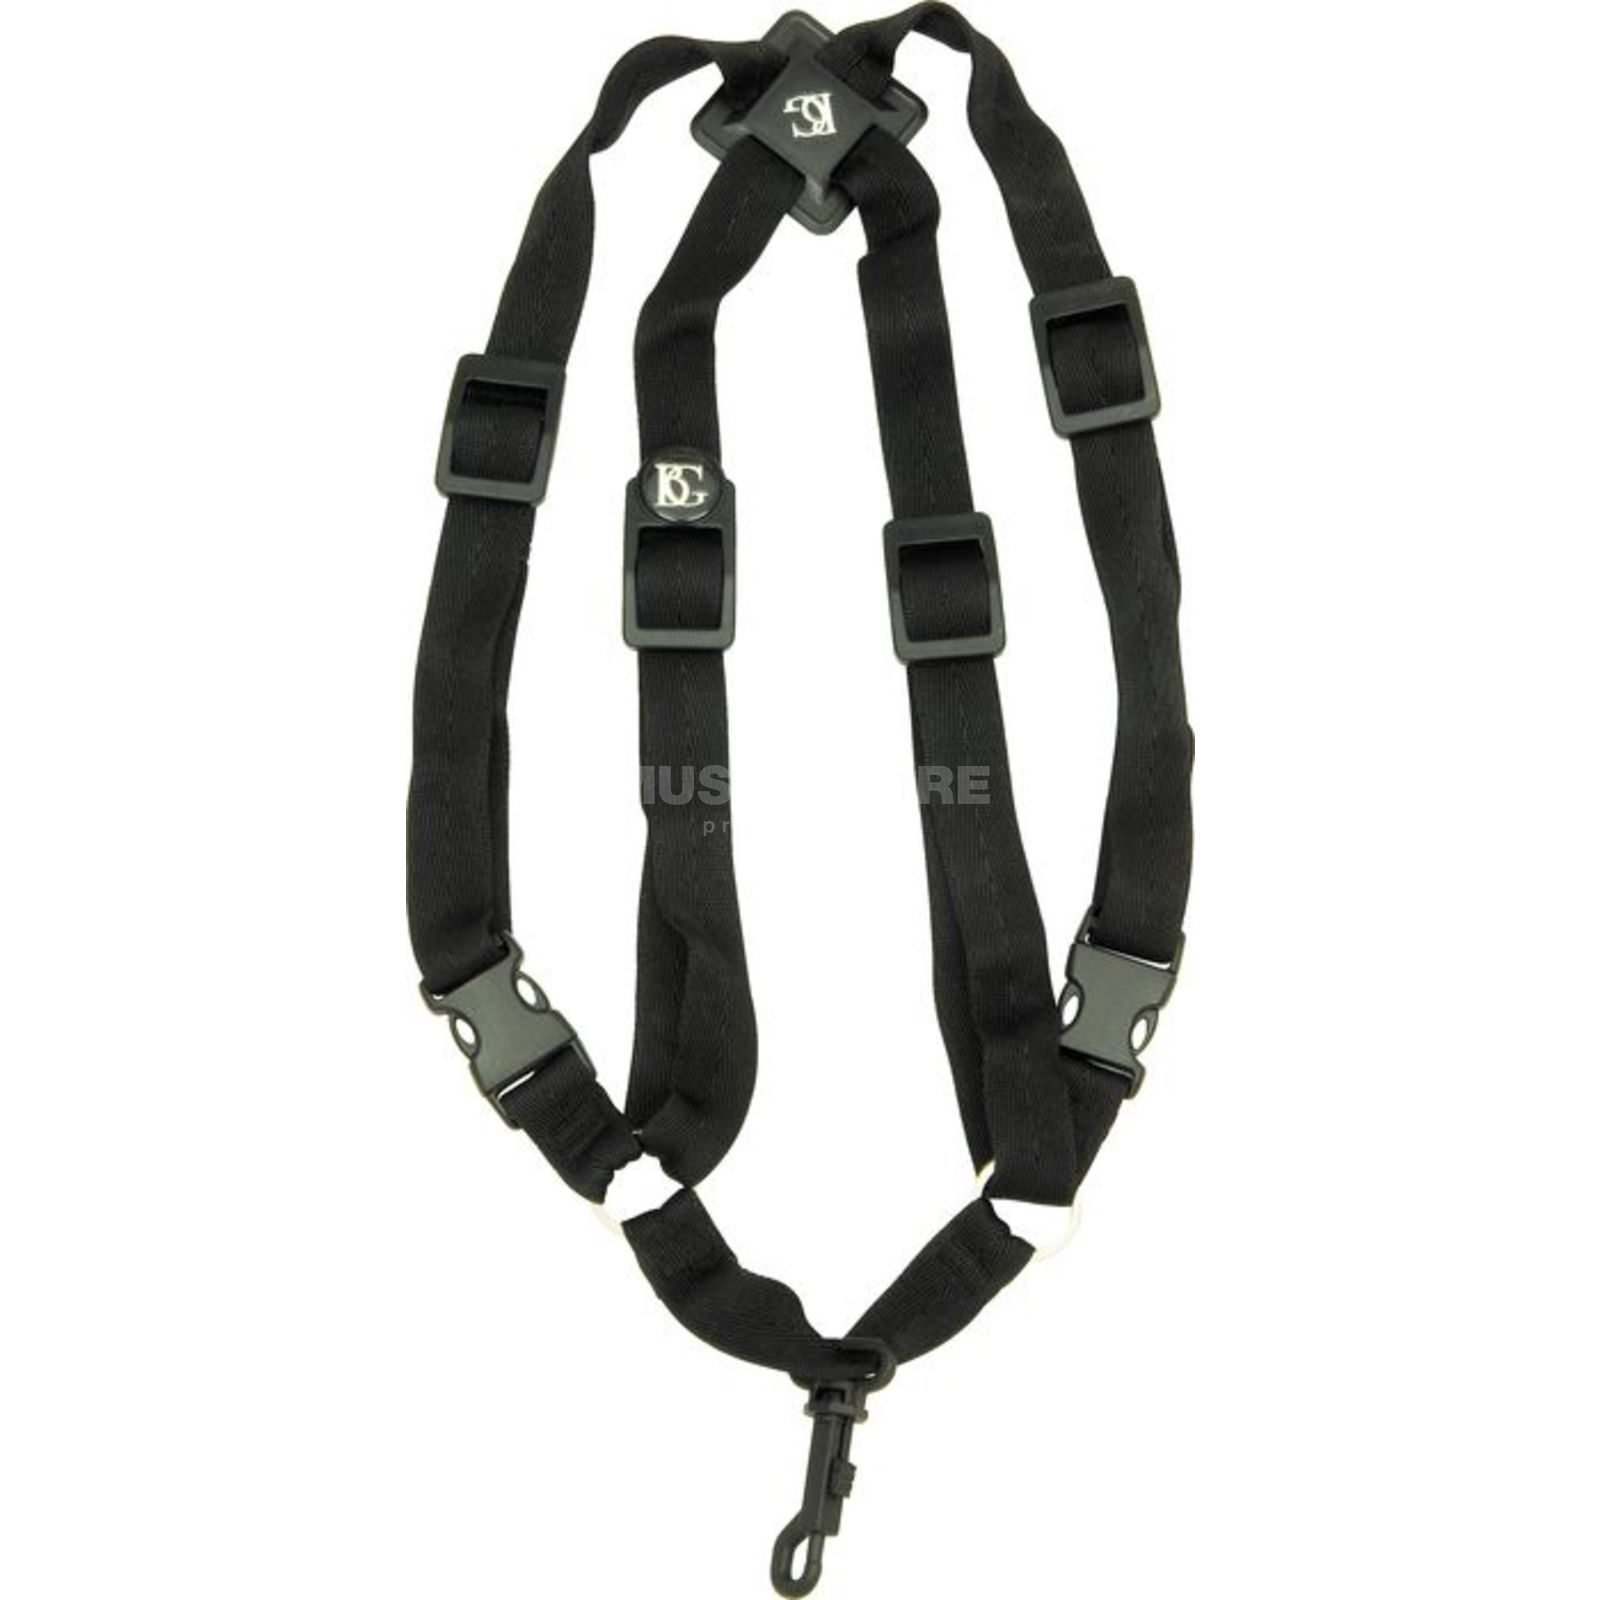 BG S42 SH Carrying Strap Children S for Saxophone Product Image